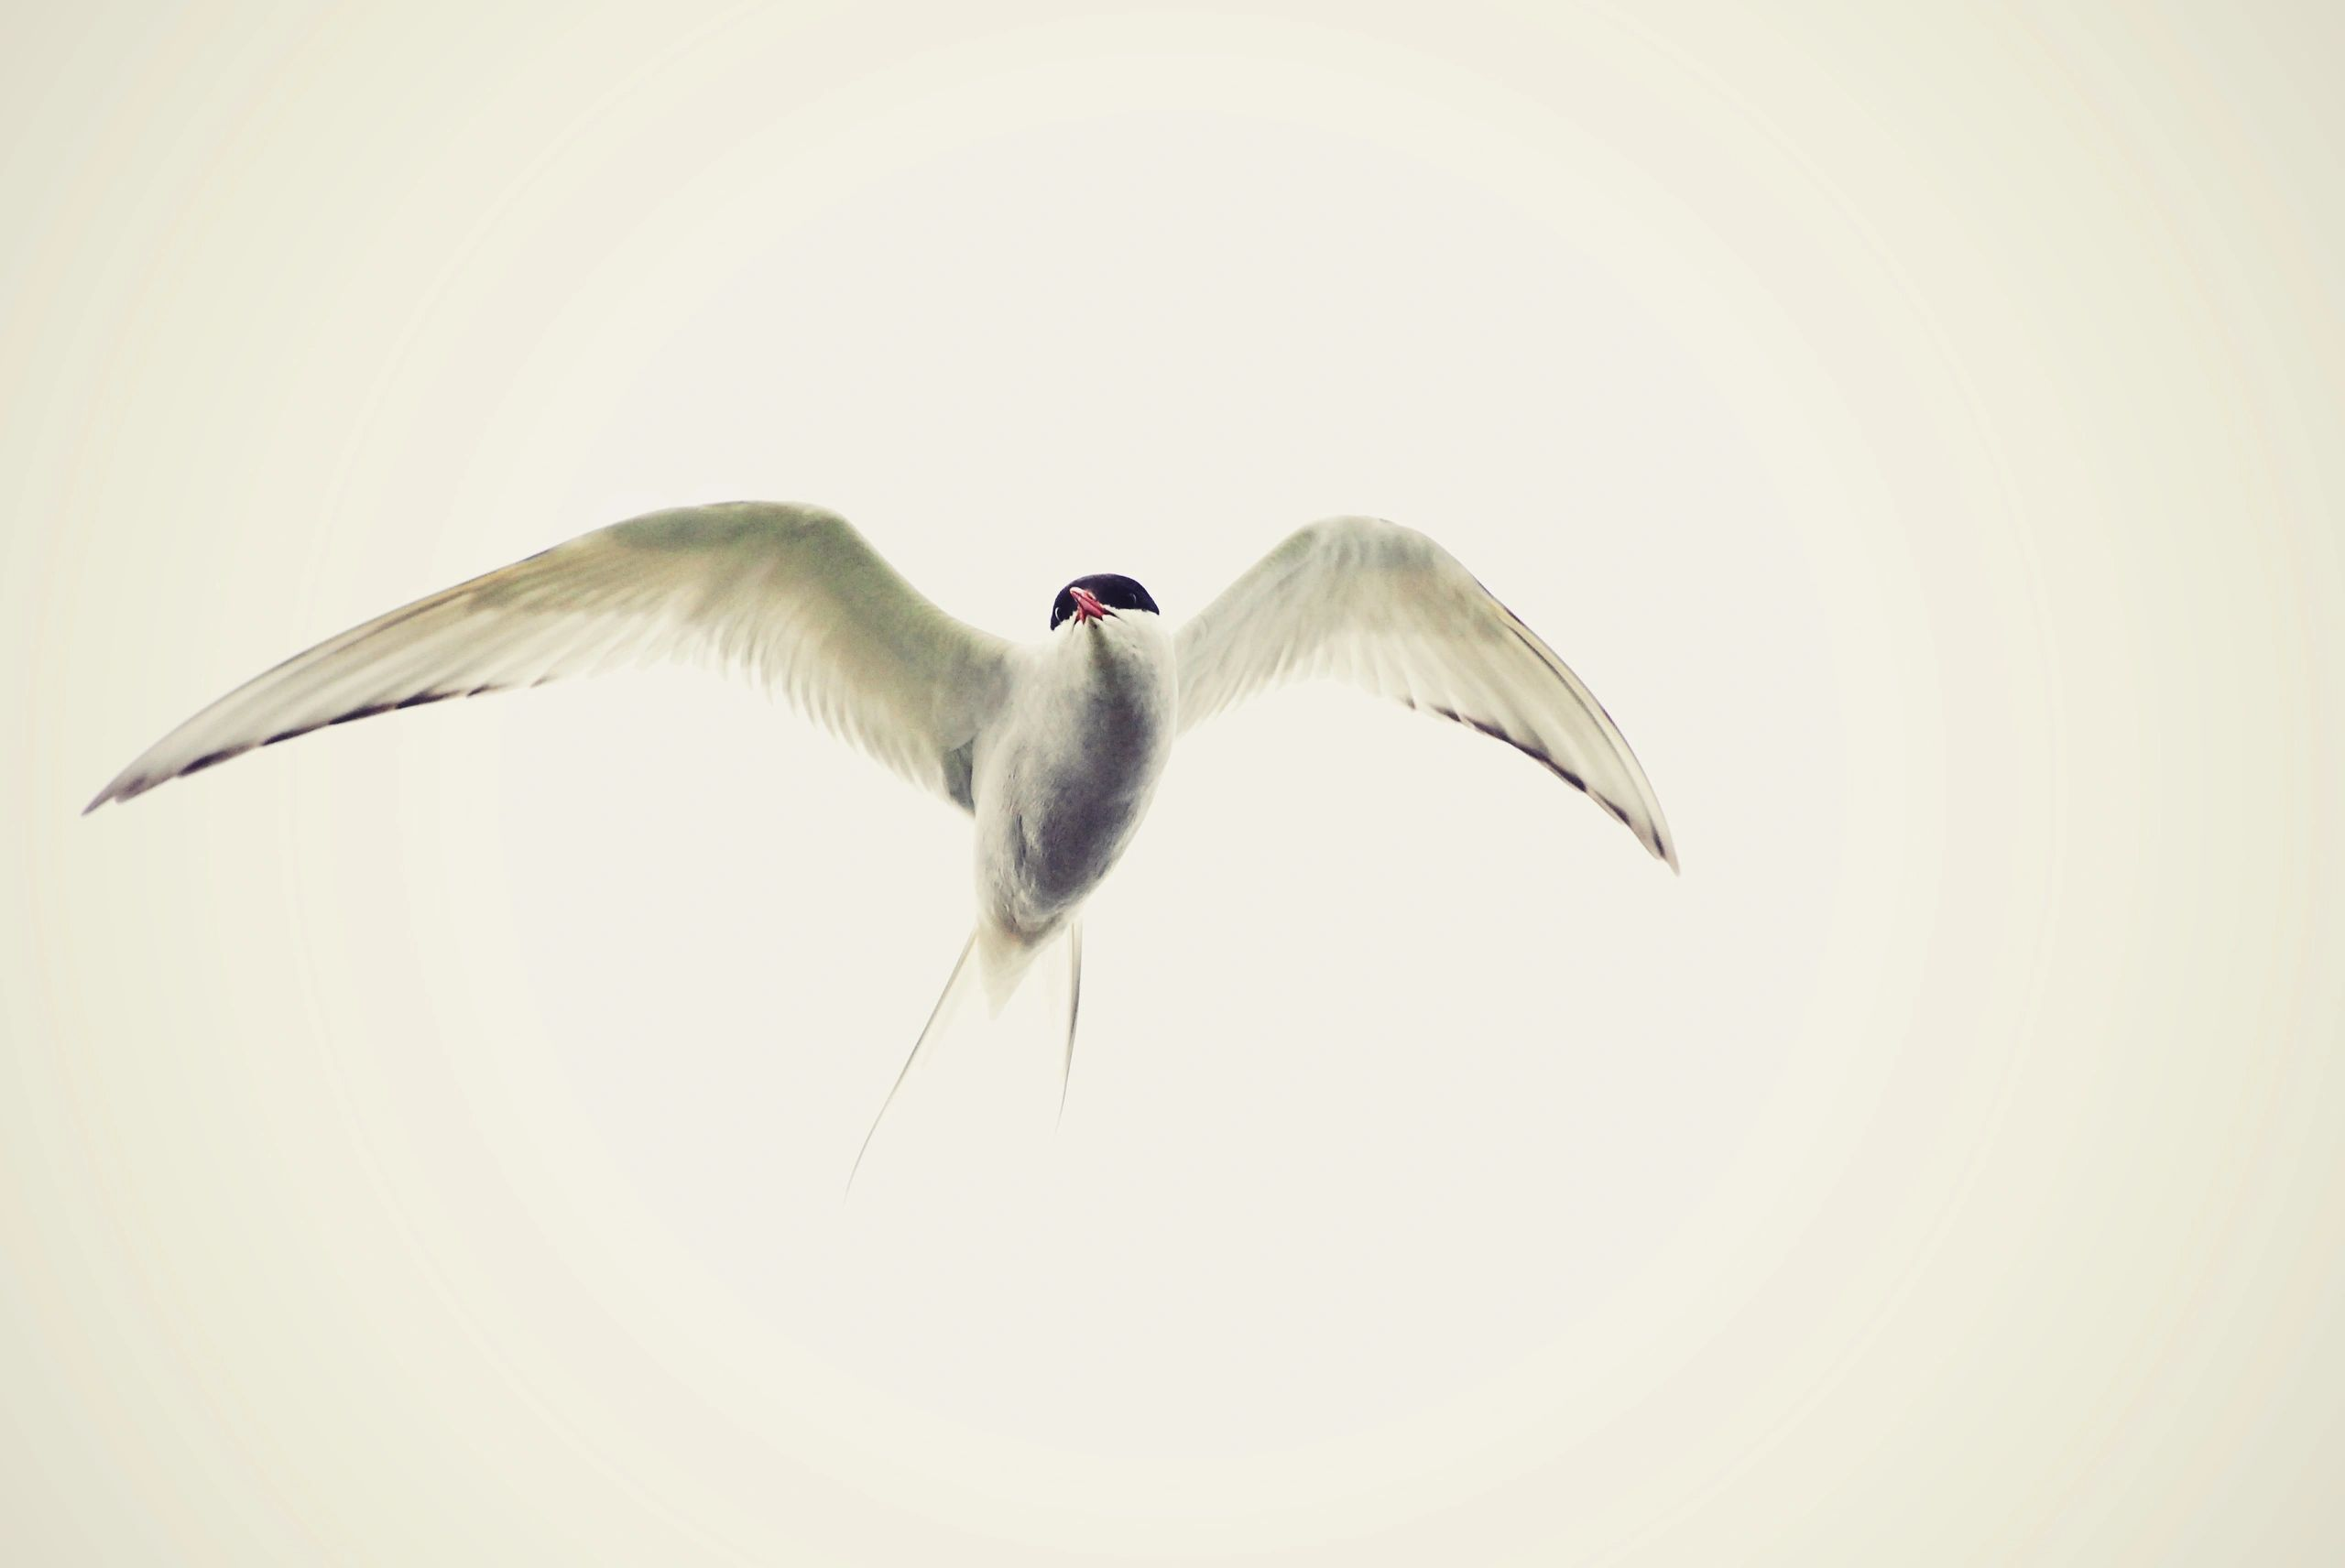 A white bird with a black cap and red bill flies through the air.